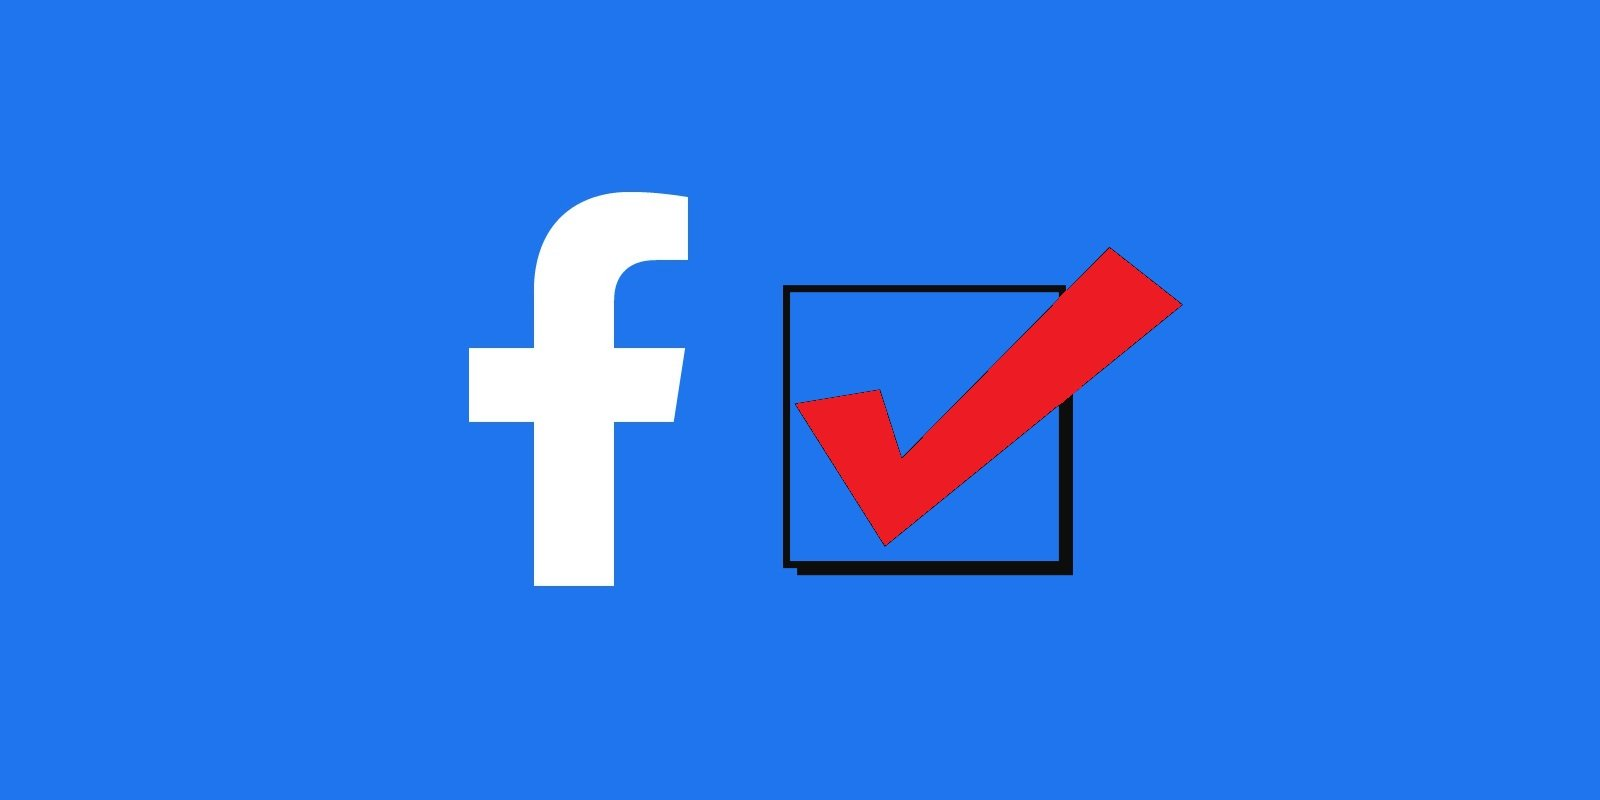 Facebook And Zuckerberg Accused Of Rigging Political Ads, Manipulating Voters